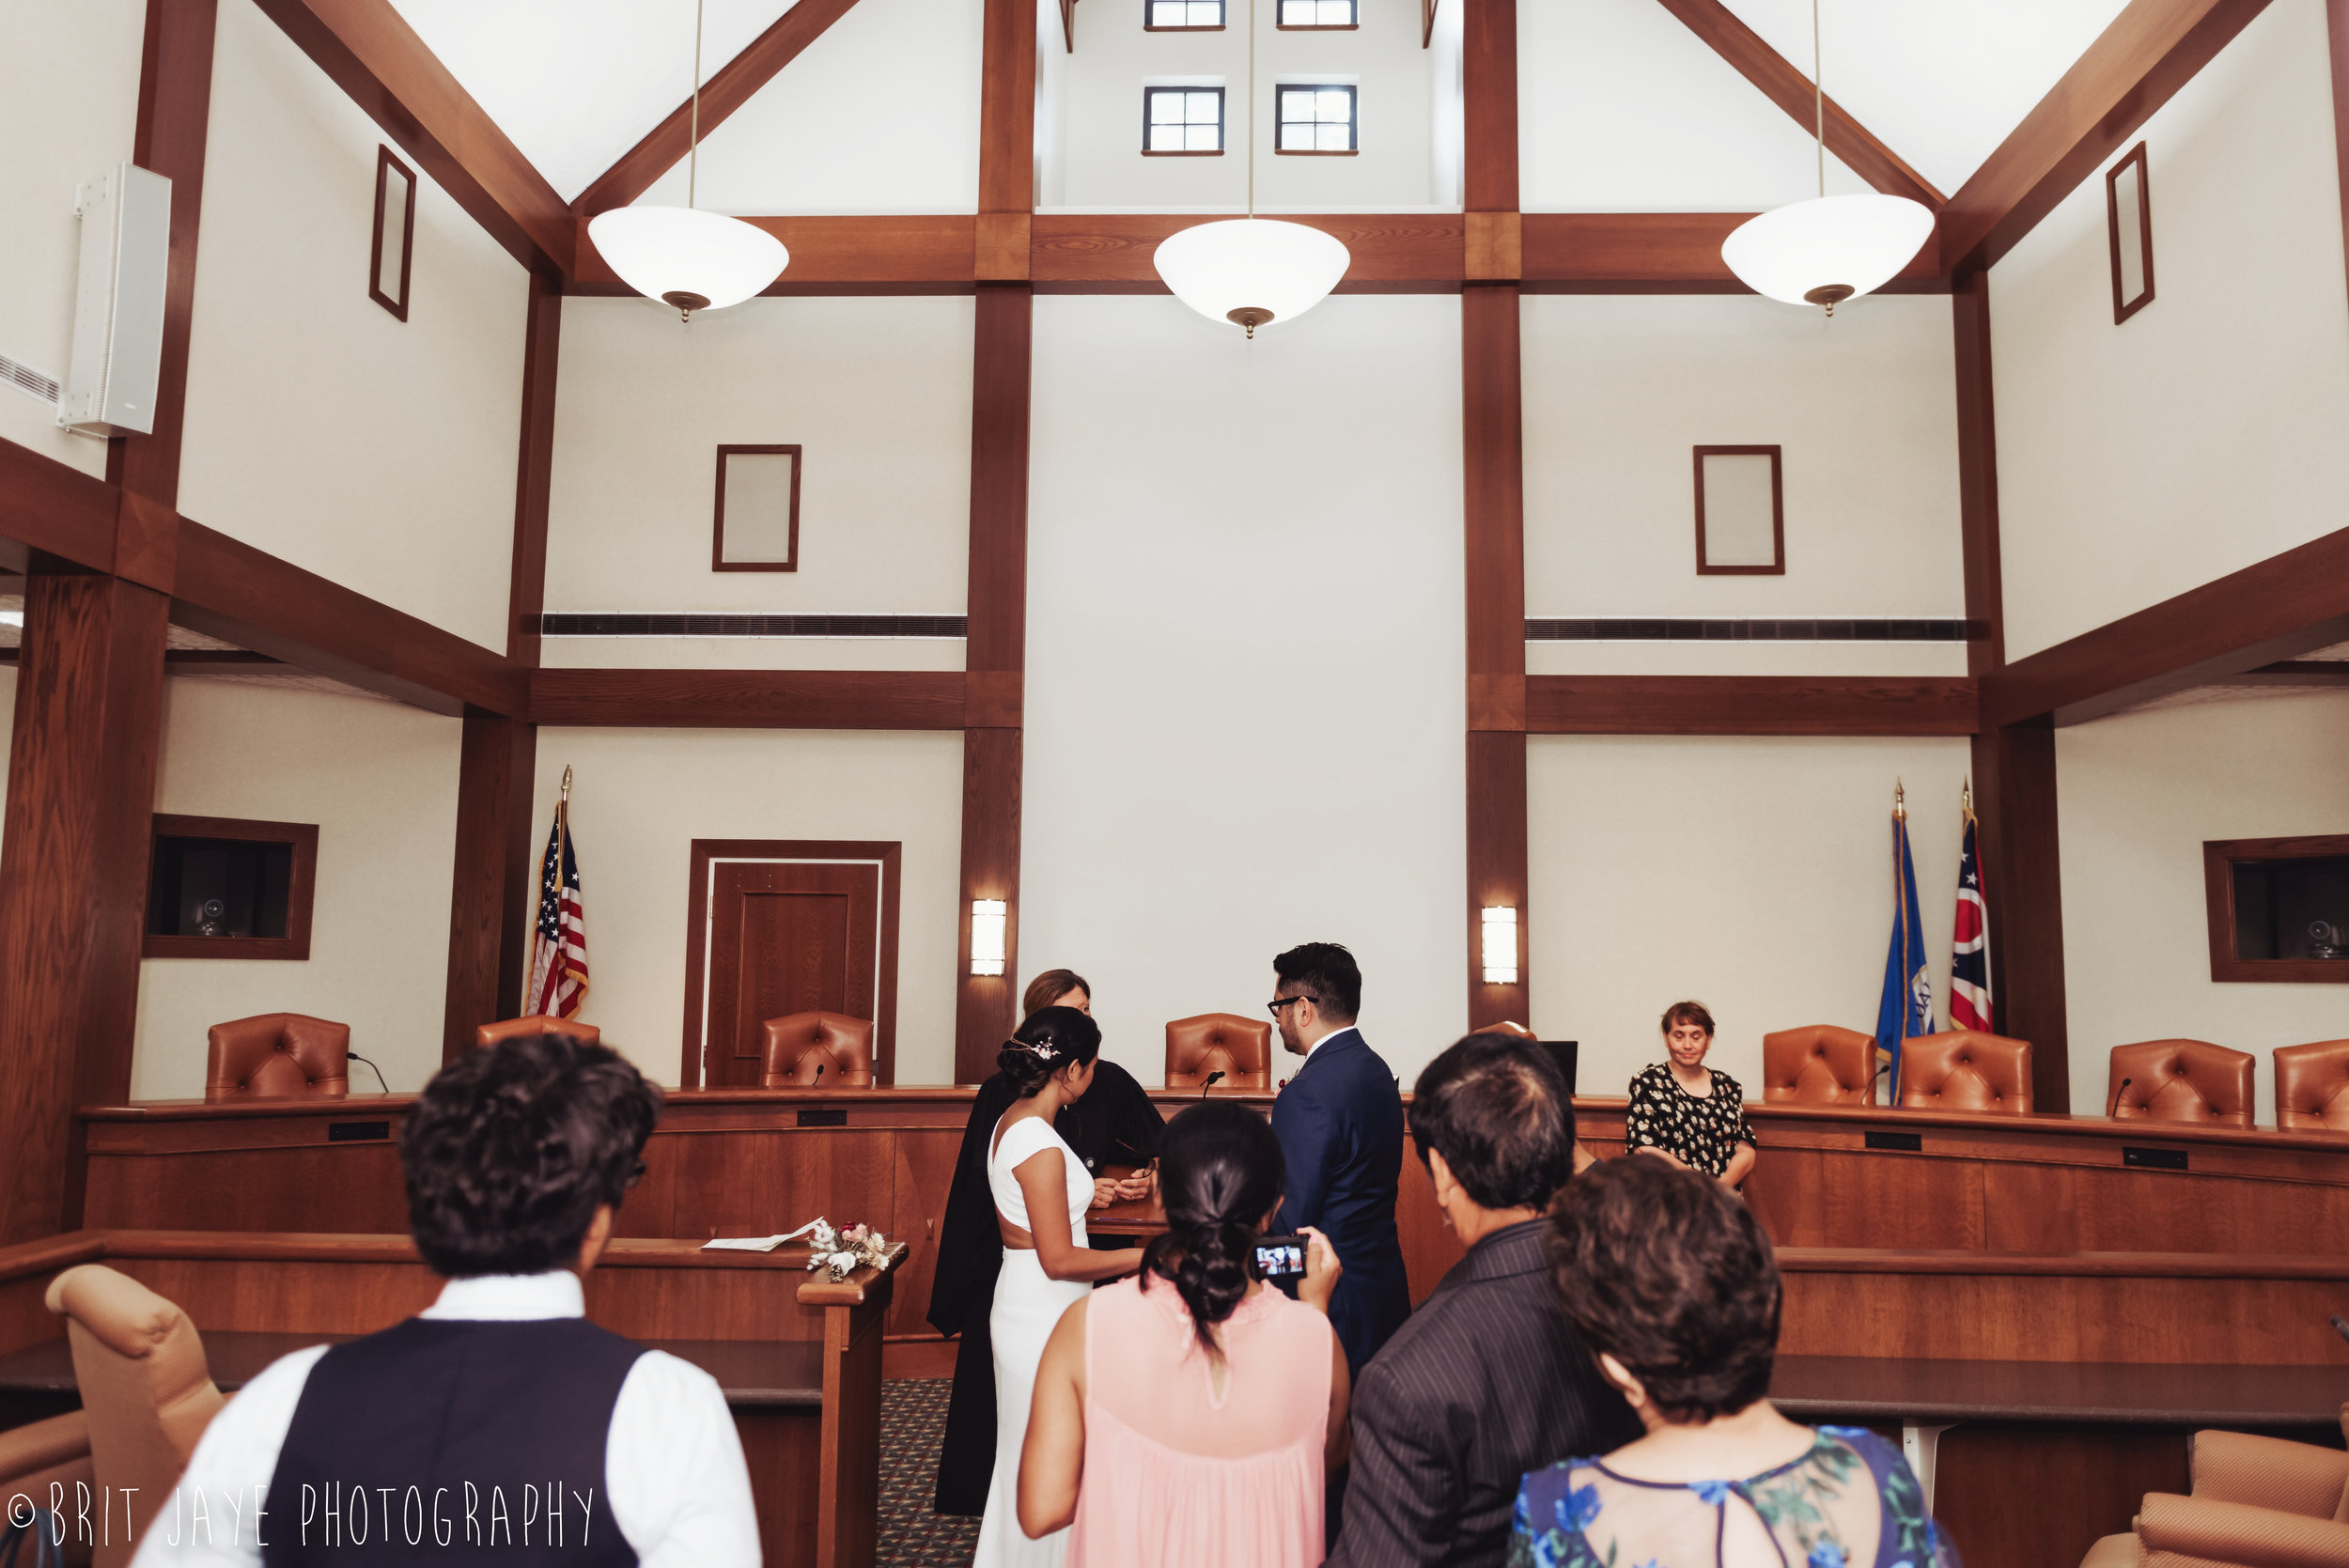 Oakwood_Courthouse_Wedding_Ceremony-38.jpg